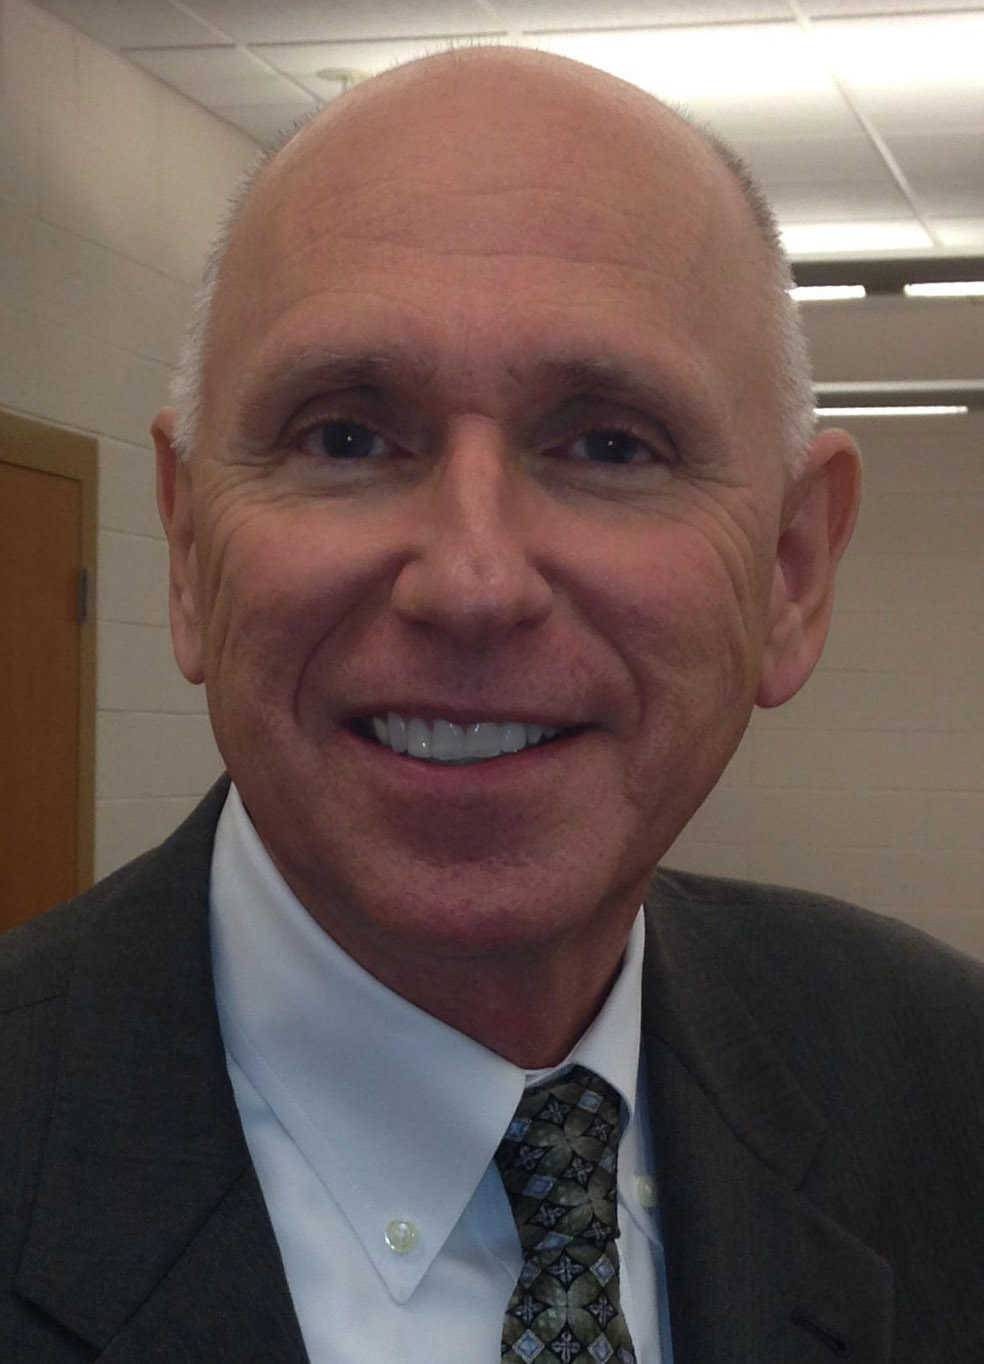 Kaneland picks ex-Palos Hills chief as interim superintendent